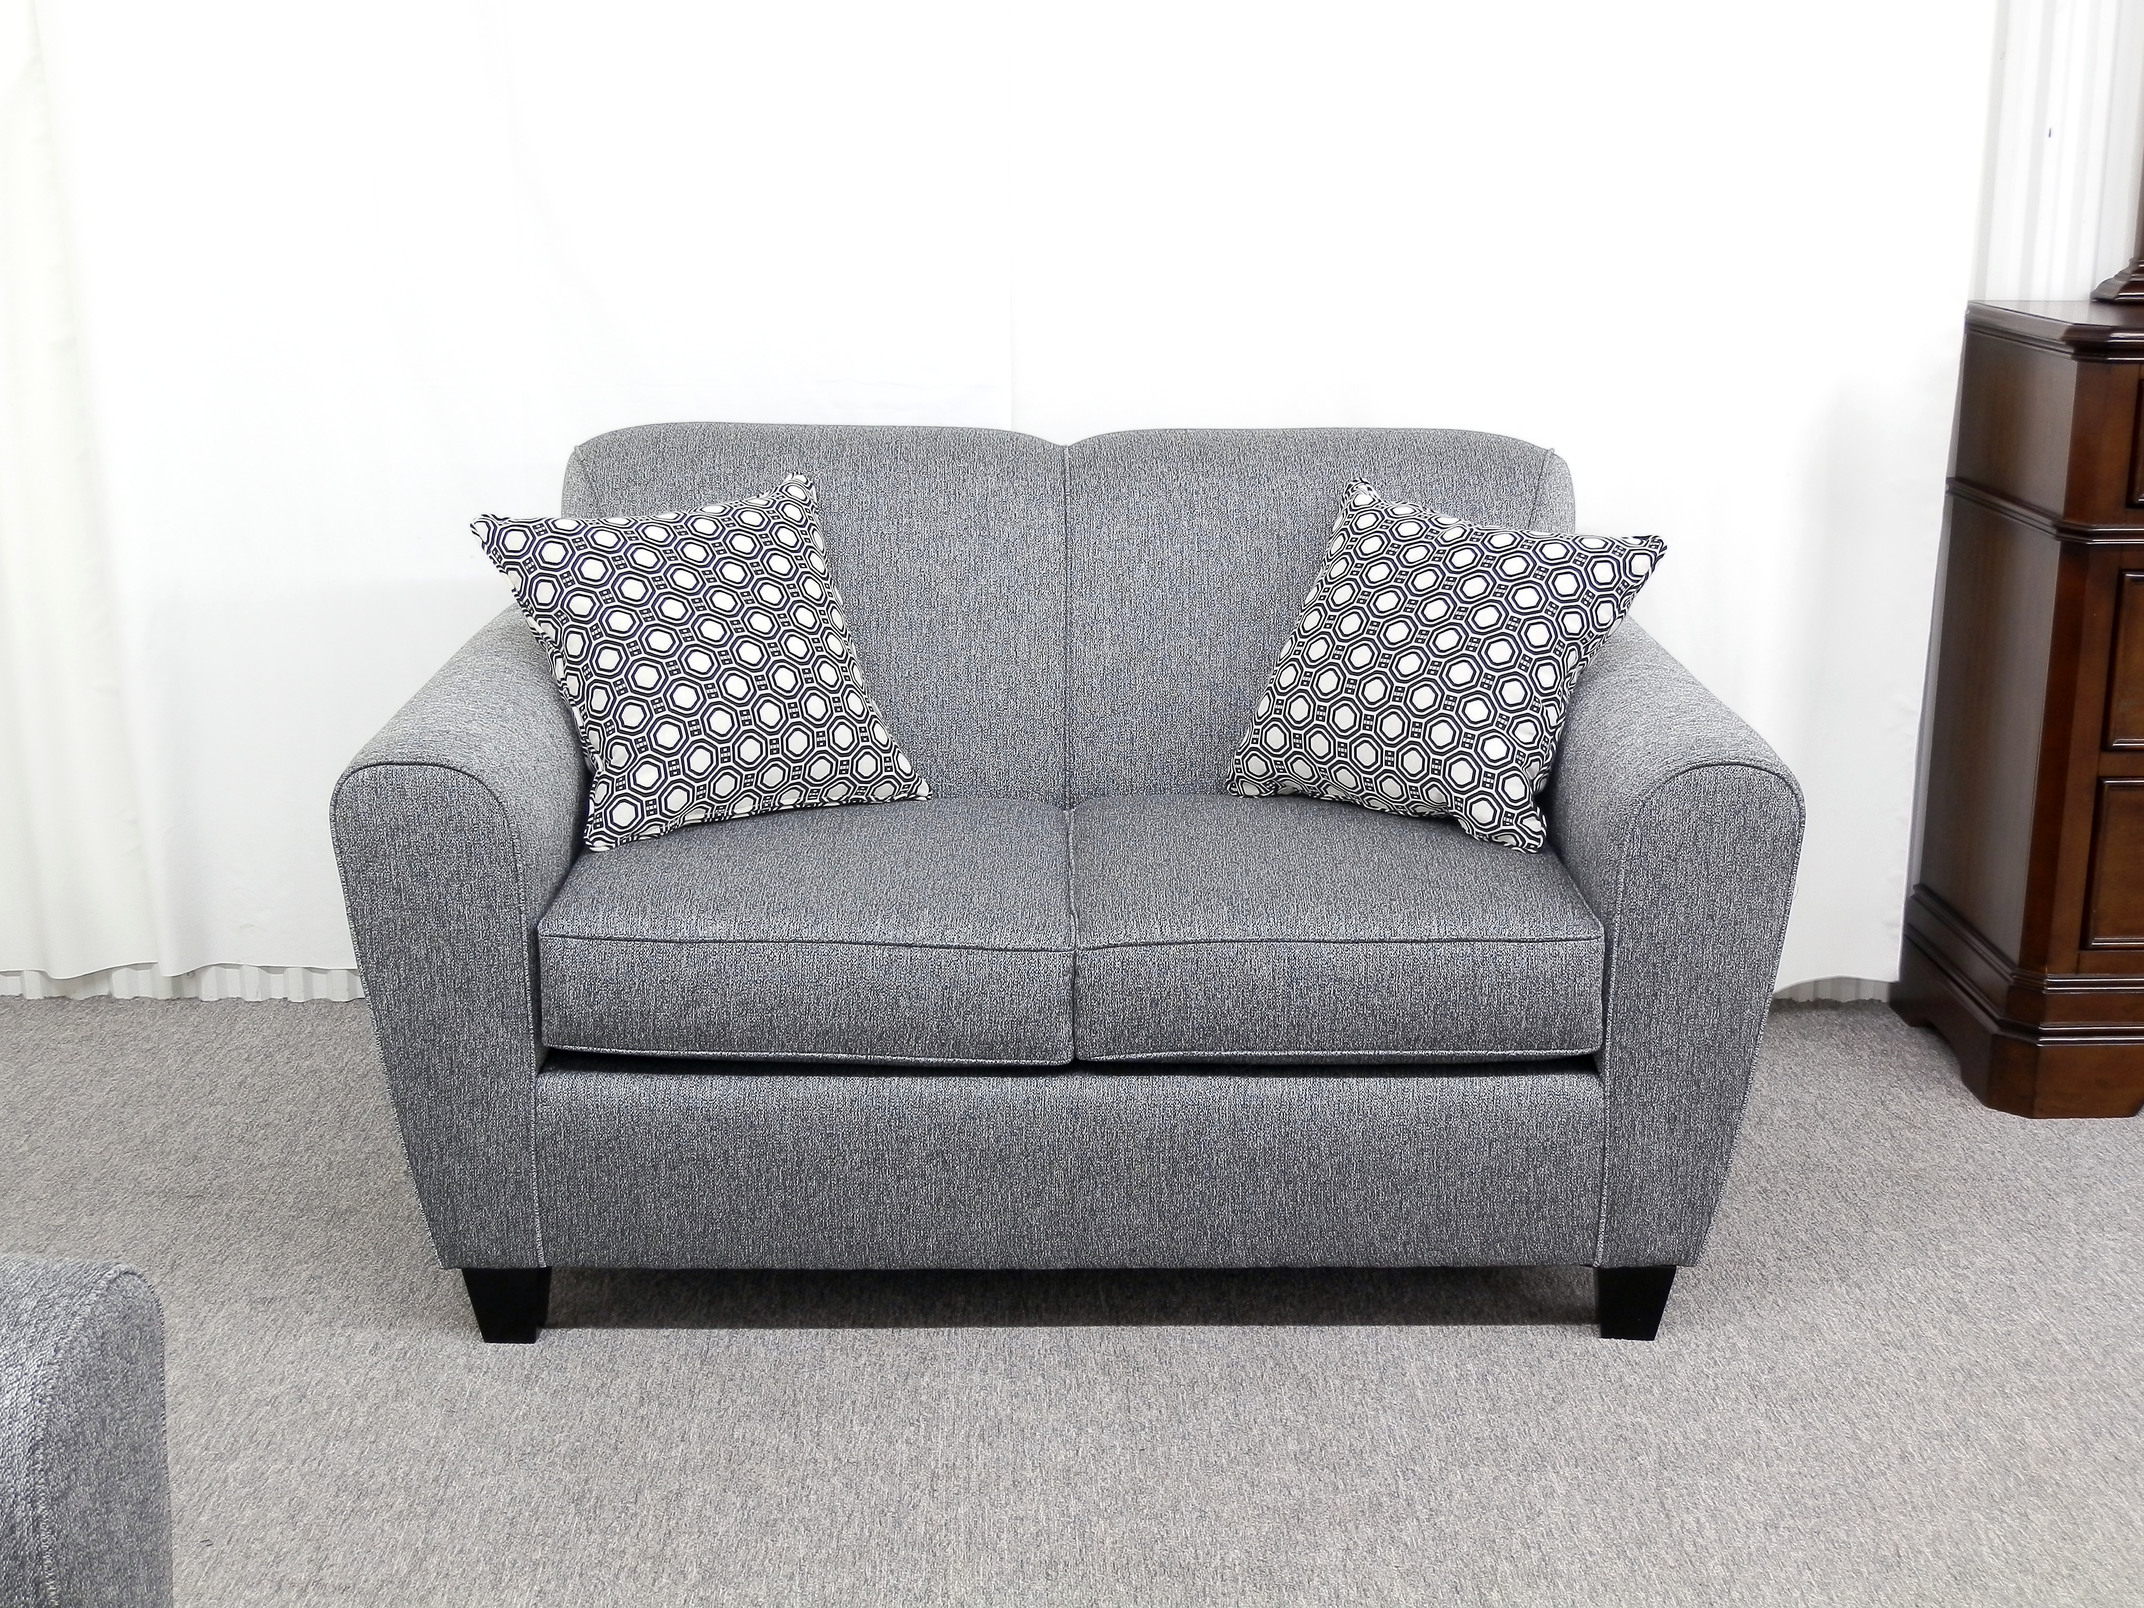 23068 – Loveseat